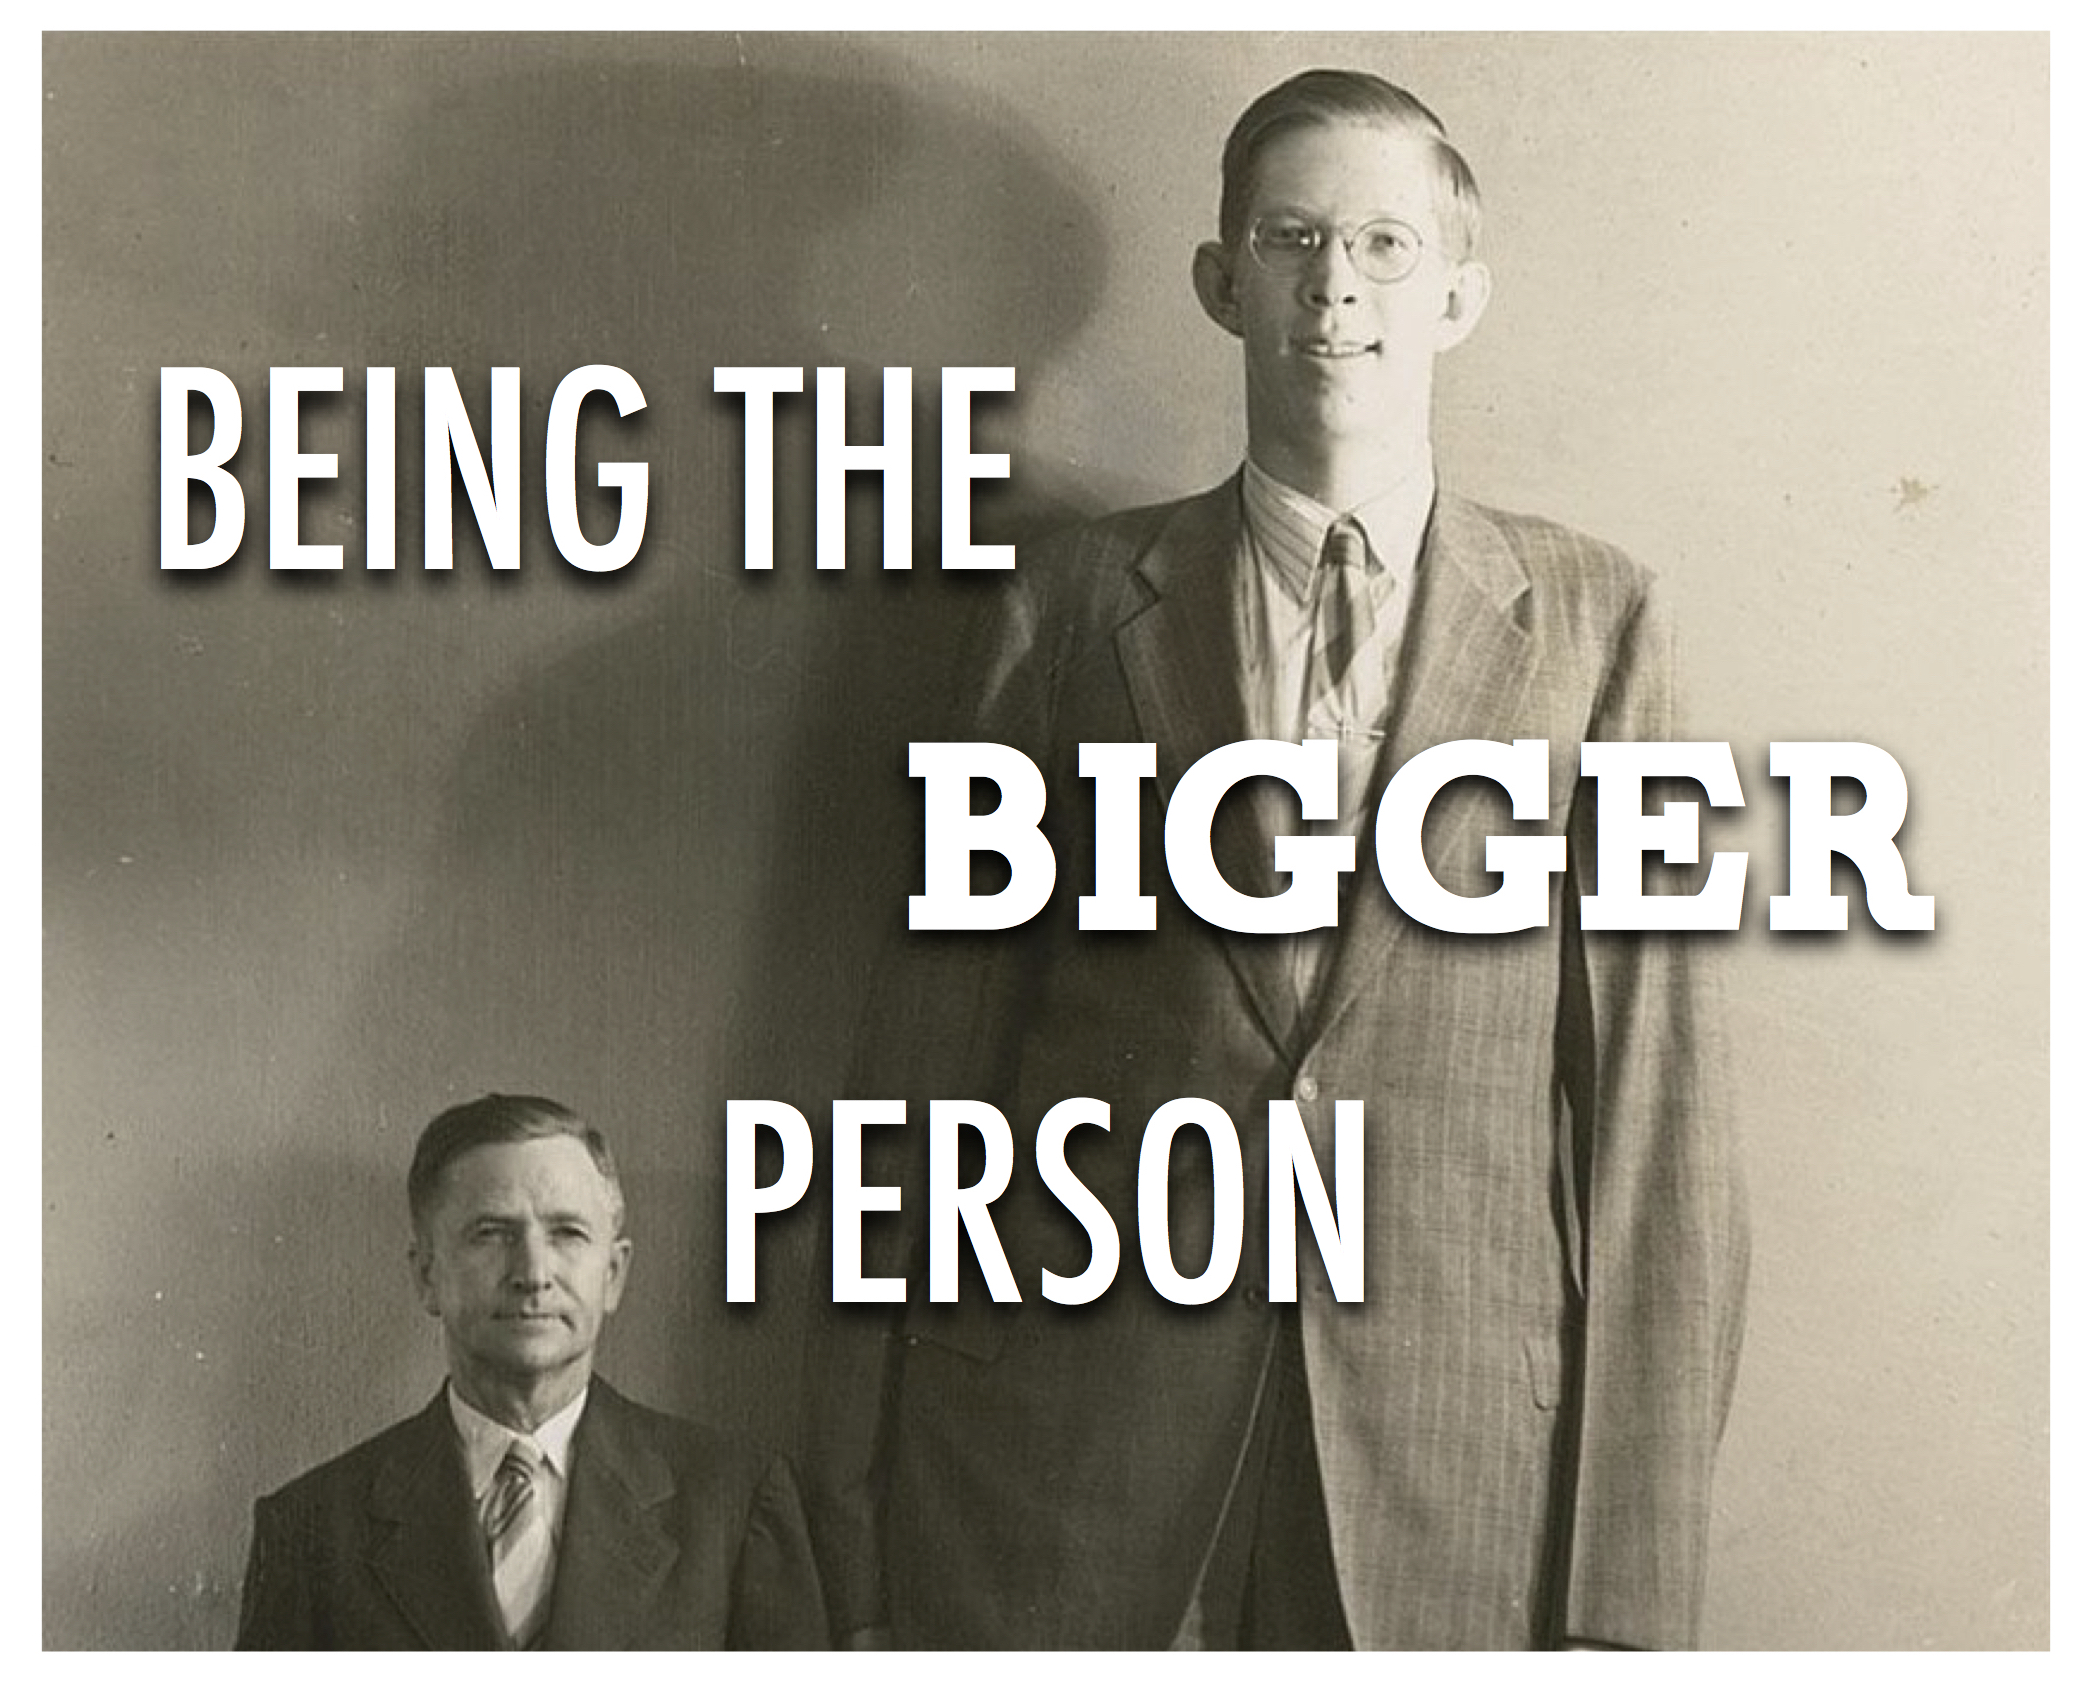 Being the Bigger Person